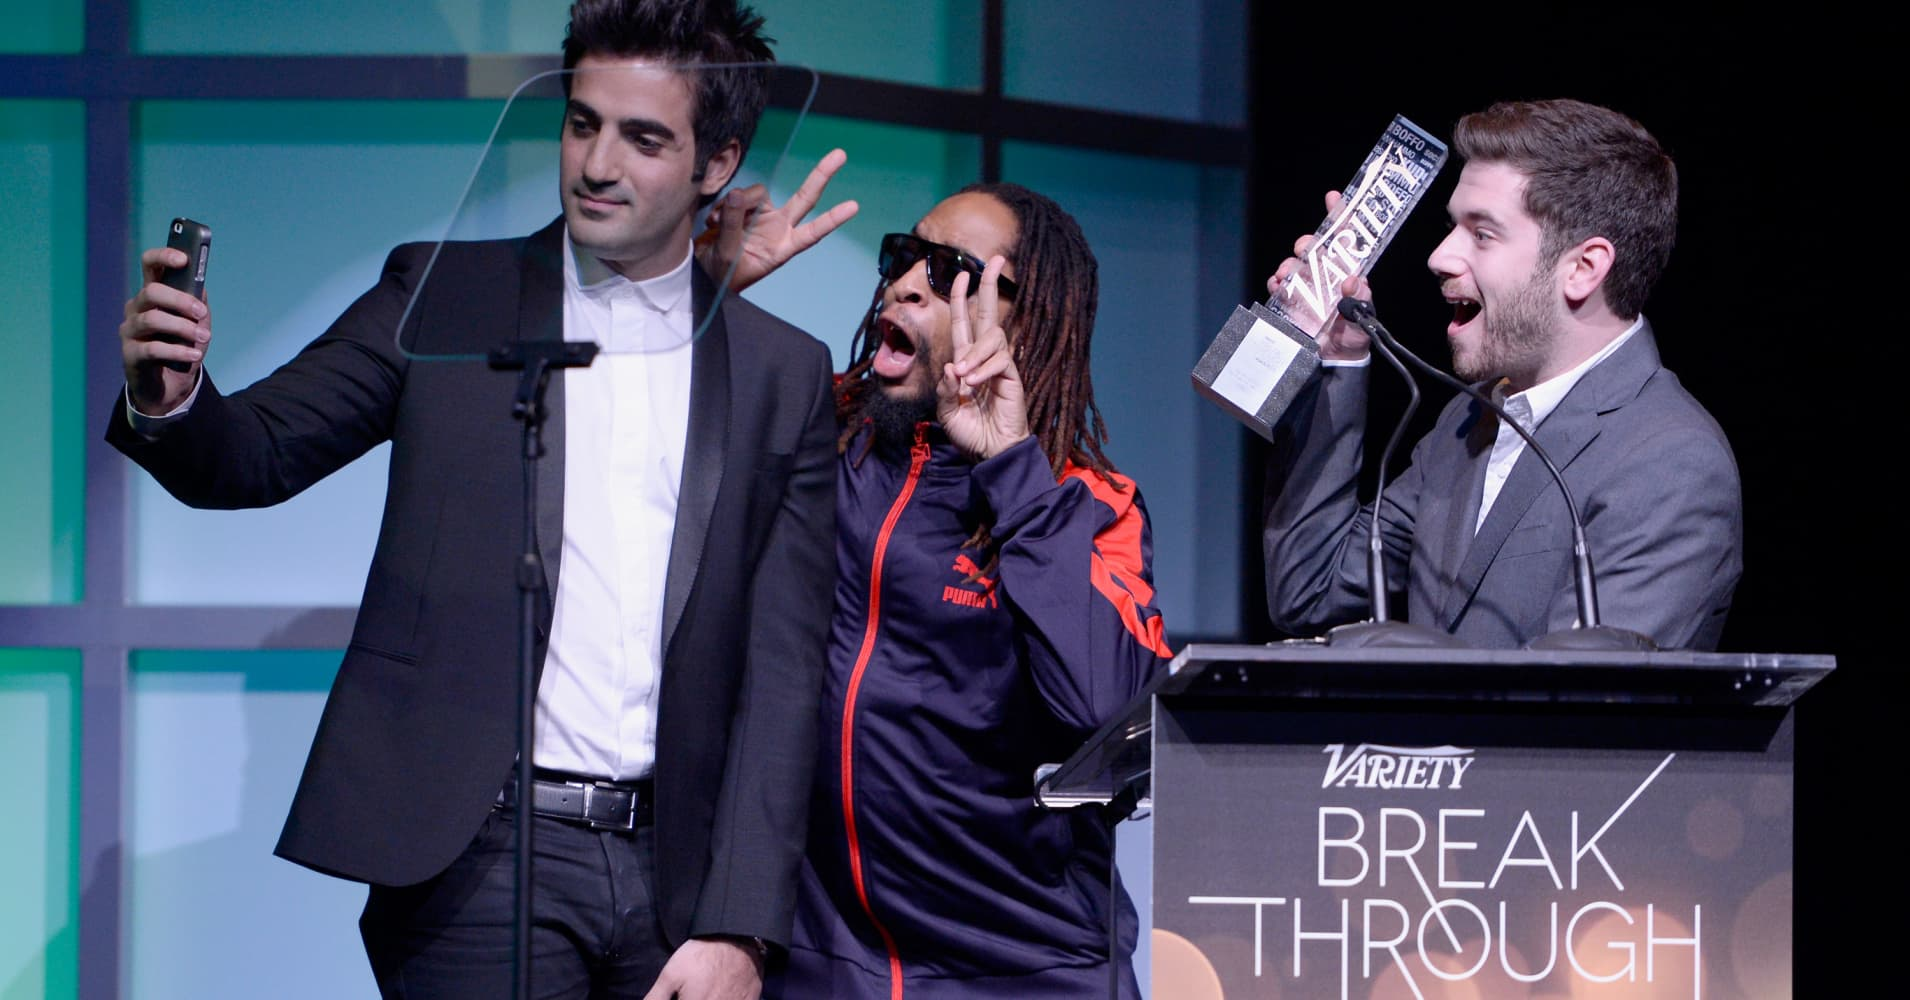 Honorees Rus Yusupov (L) and Colin Kroll (R) accept the Breakthrough Award for Emerging Technology from rapper Lil Jon (C) onstage at the Variety Breakthrough of the Year Awards during the 2014 International CES at The Las Vegas Hotel & Casino on January 9, 2014 in Las Vegas, Nevada.